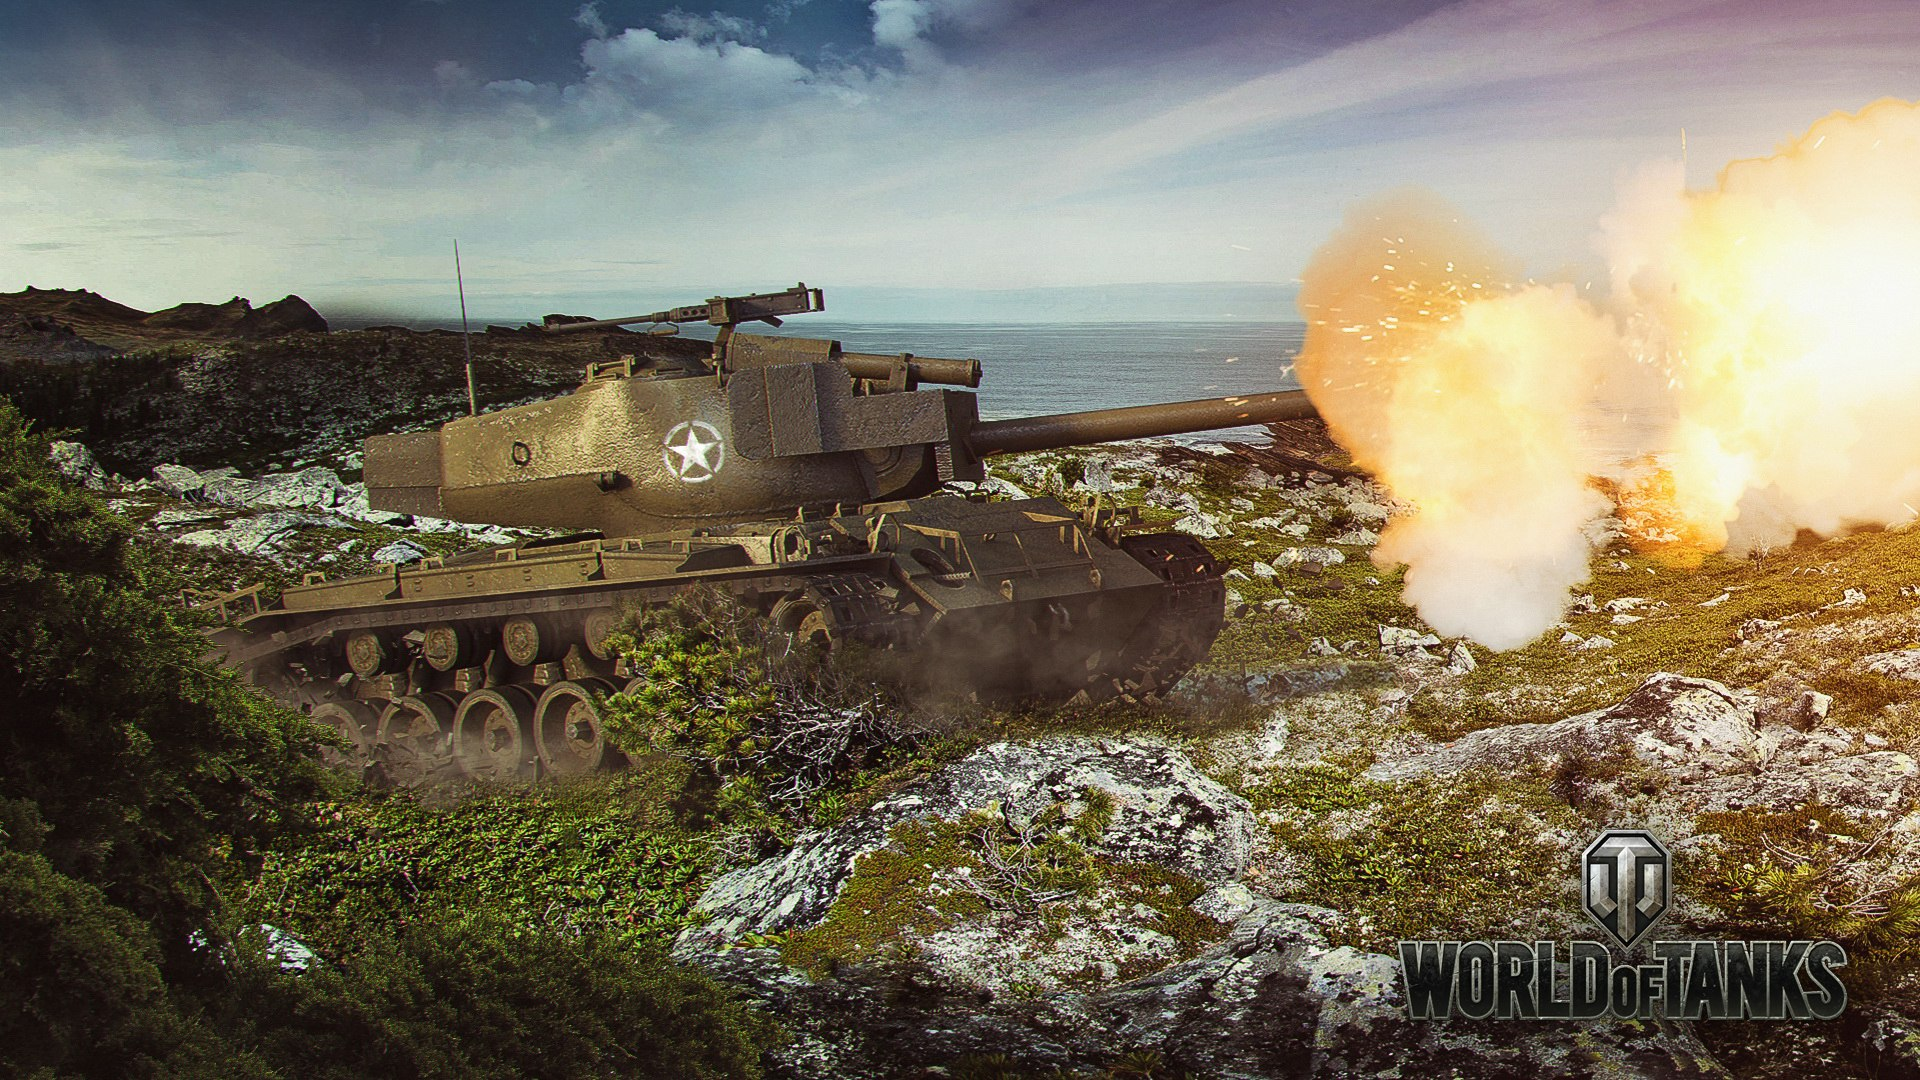 new wot wallpapers by marm